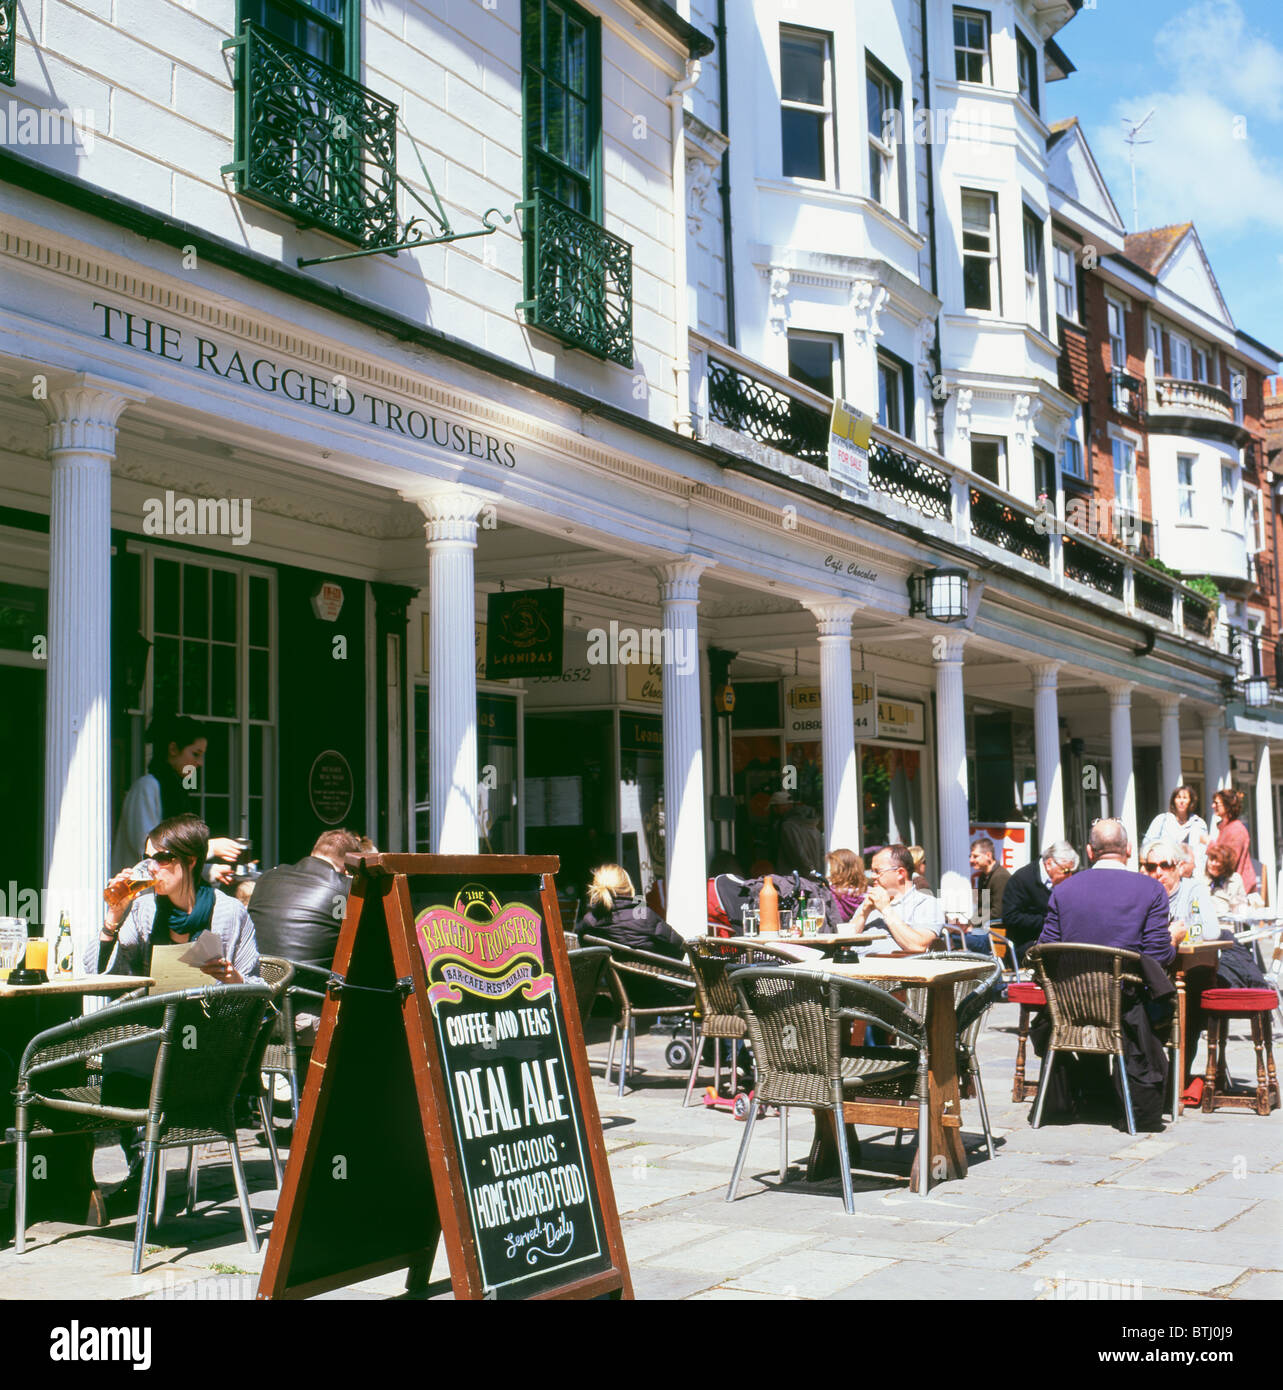 People relaxing outside The Ragged Trousers pub drinking real ale Pantiles in Tunbridge Wells, Kent England UK  - Stock Image